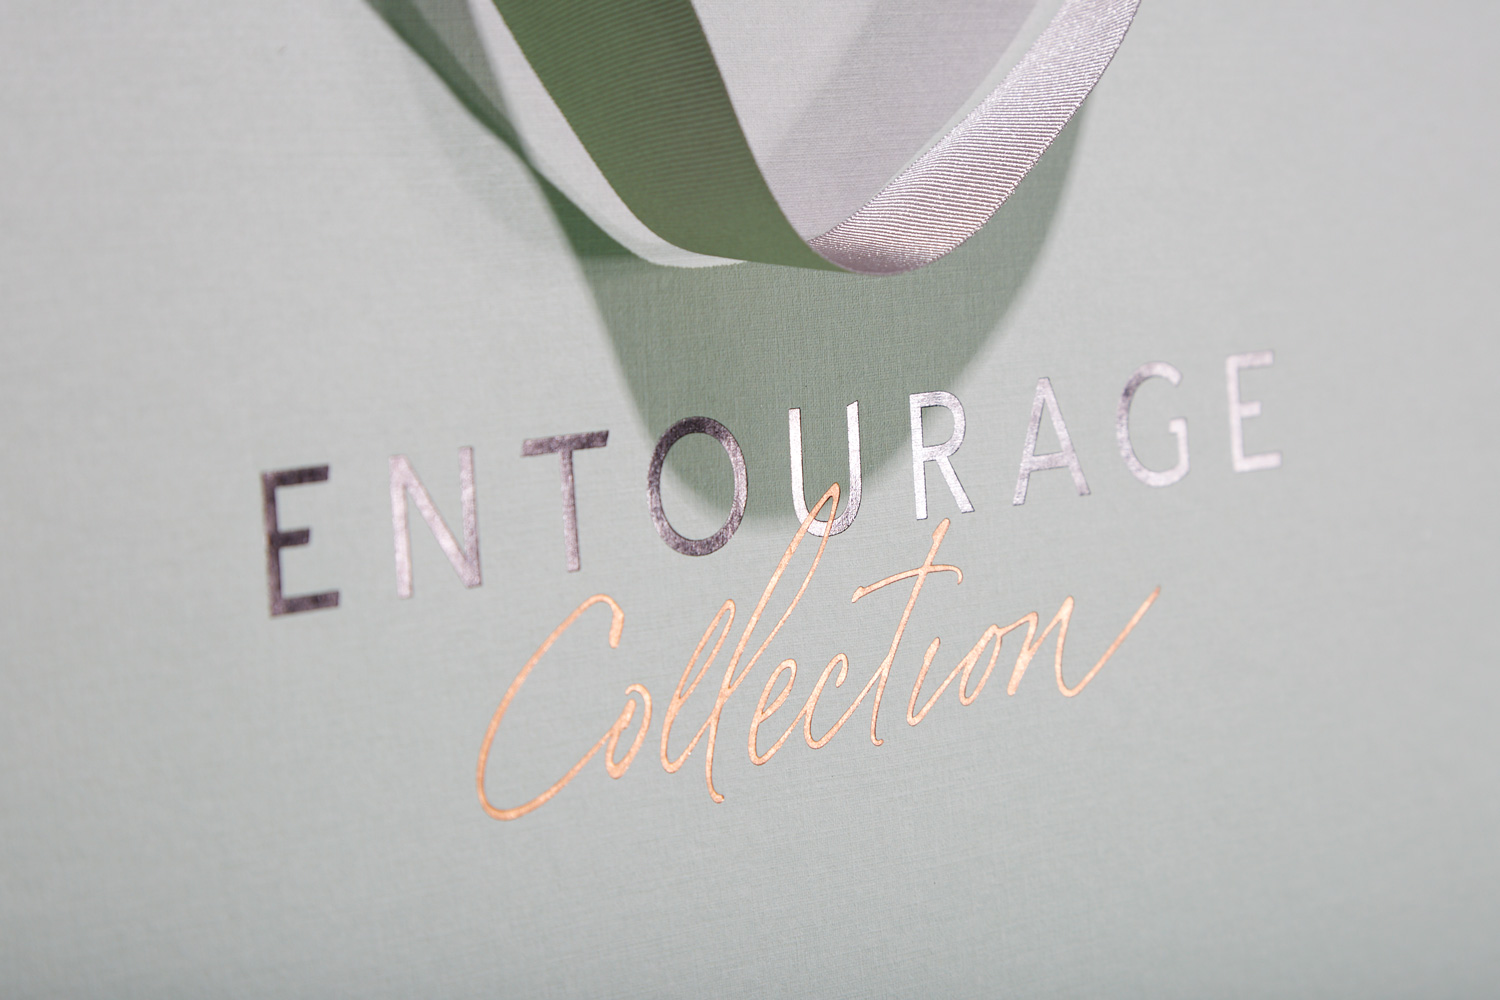 Progress Packaging Entourage Bespoke Paper Large Custom Colorplan Embossed Rose Gold Foil Carrier Bag